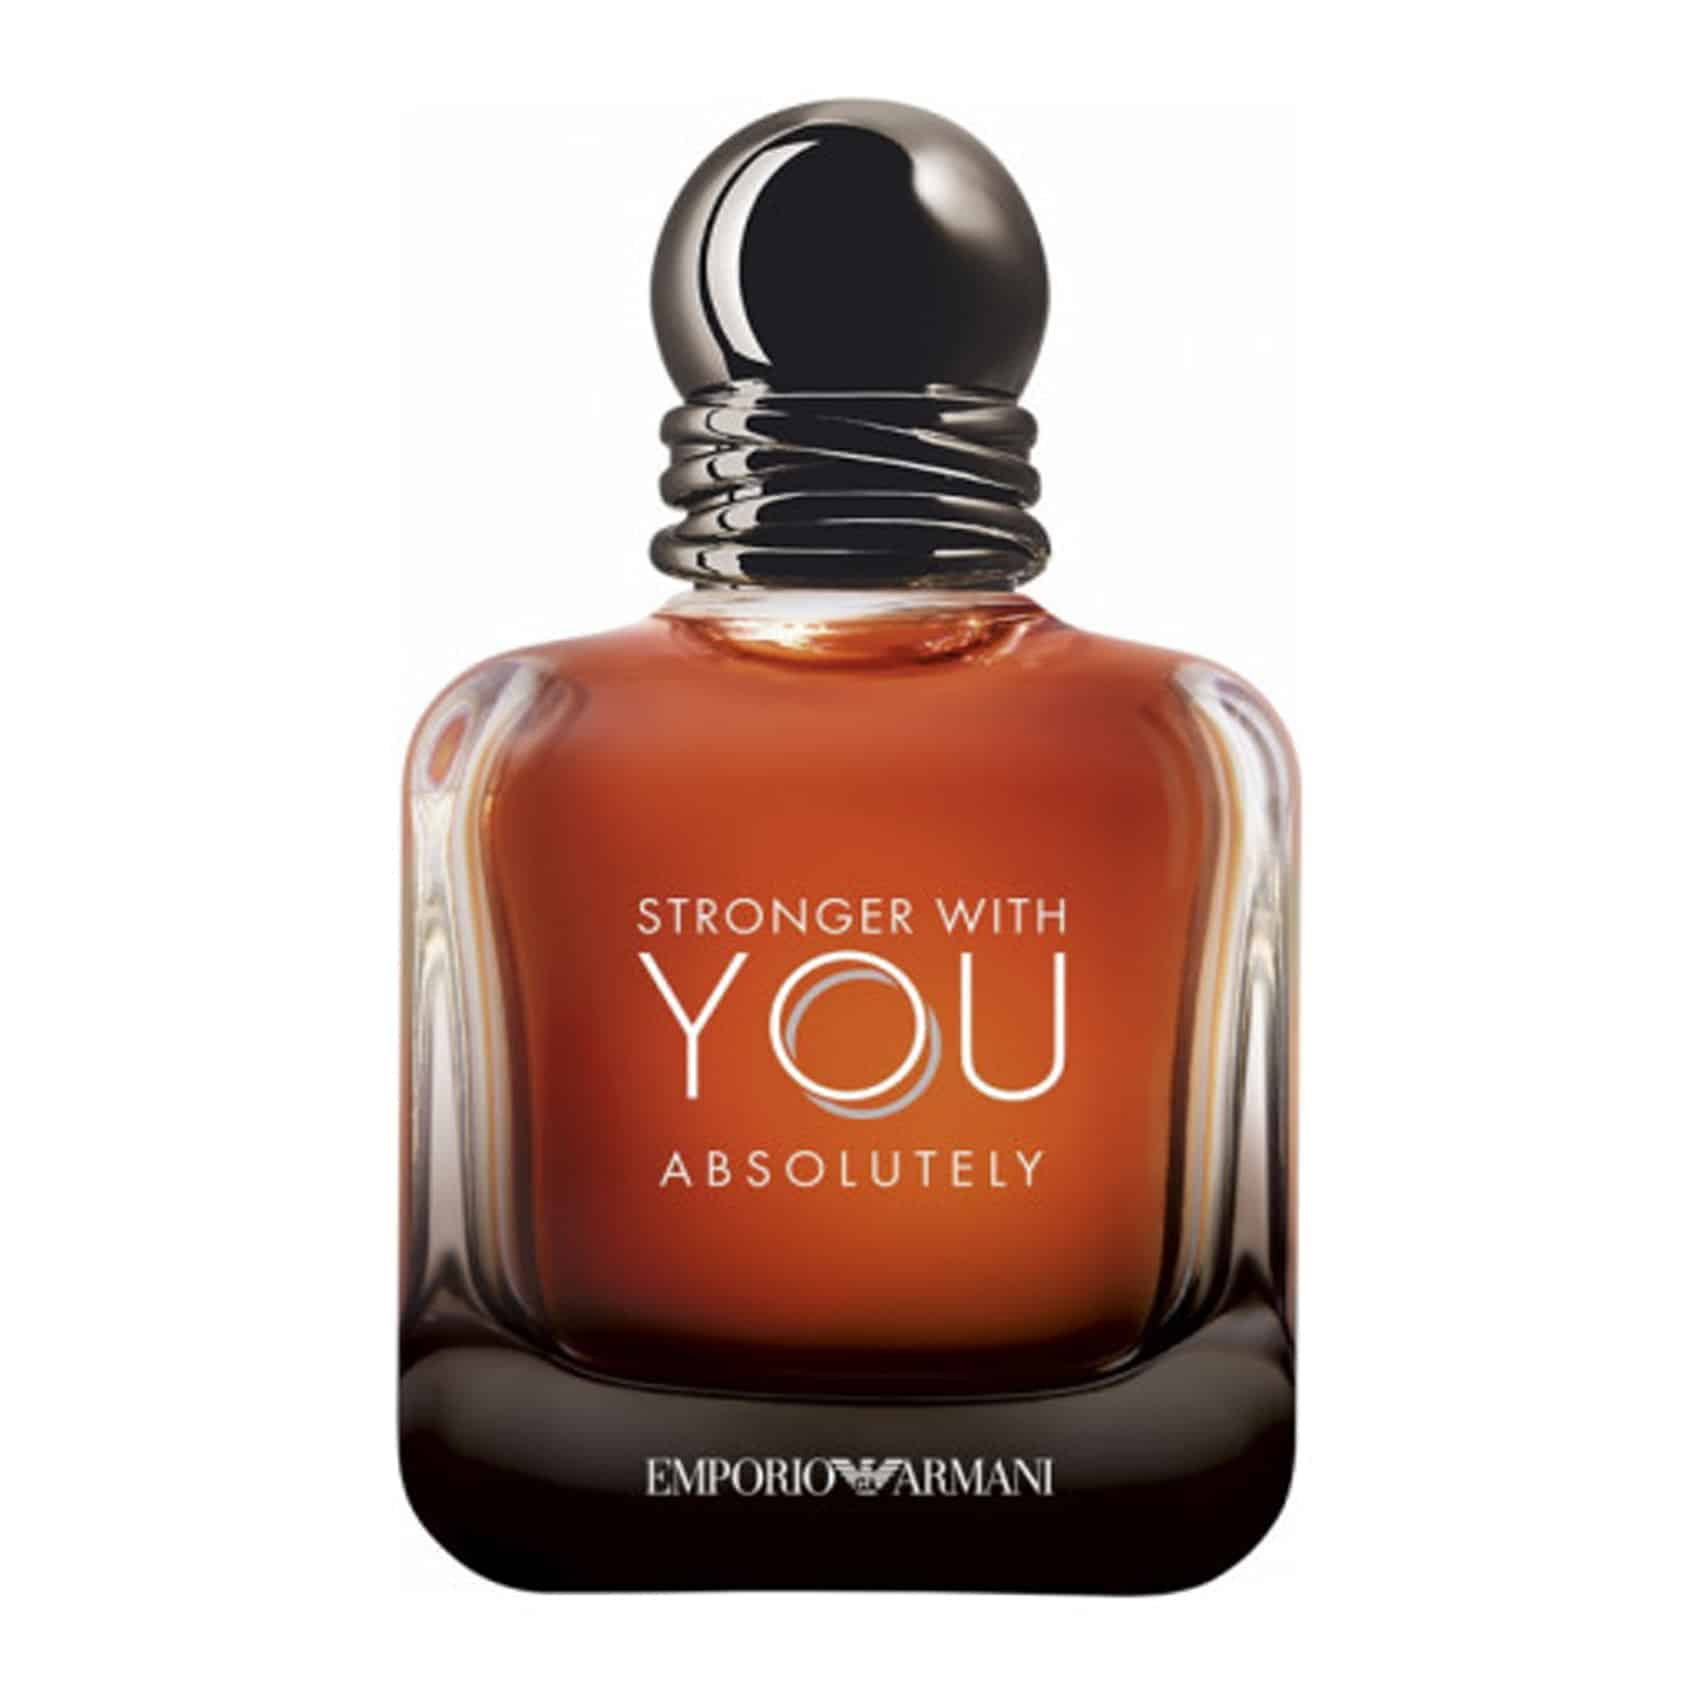 Fragrancefind   Armani Stronger with you Absolutely Parfum 100ml Spray